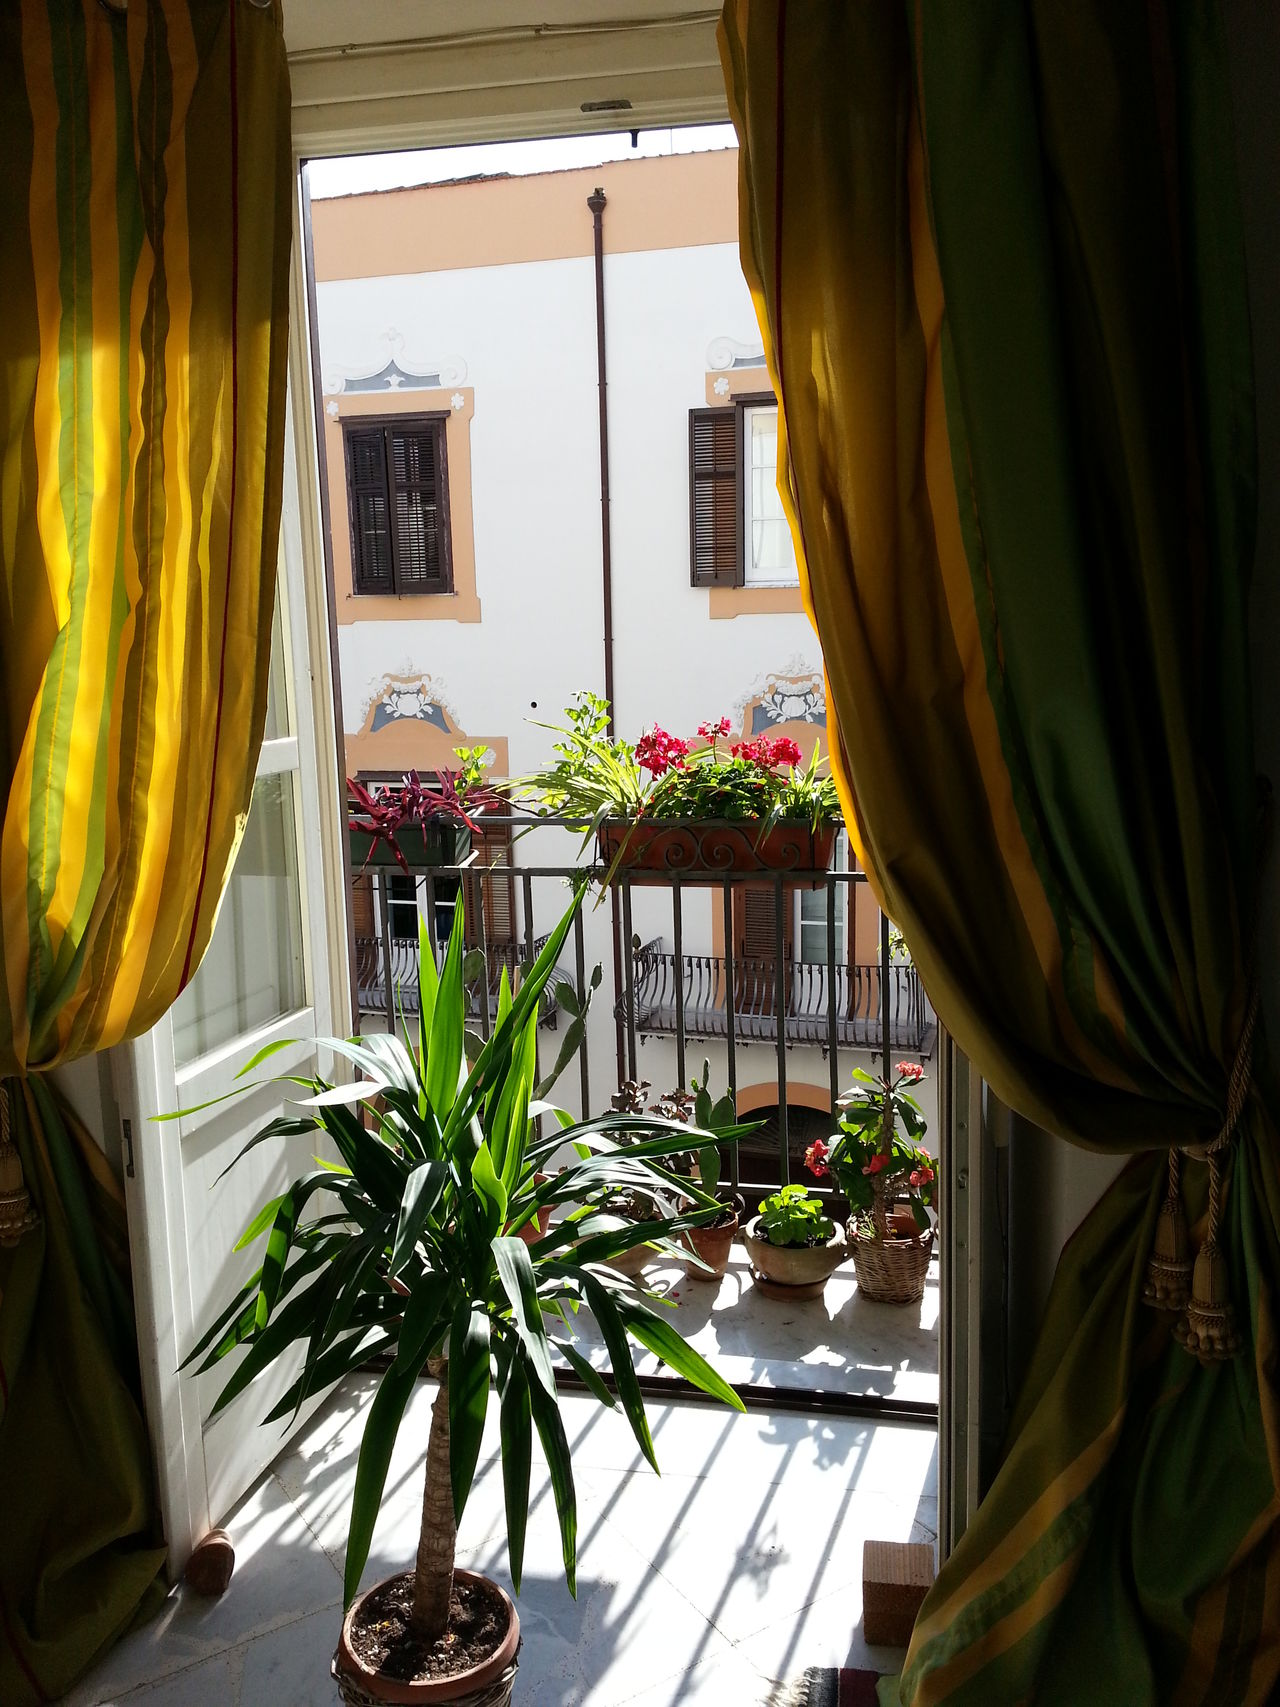 A Terrace With Flowers Architecture Building Exterior Built Structure City Day Flower Italian Interior No People Palermo Palermo Shooting Palermo, Italy Plant Residential Building Trough The Curtains Window Yellow Courtains